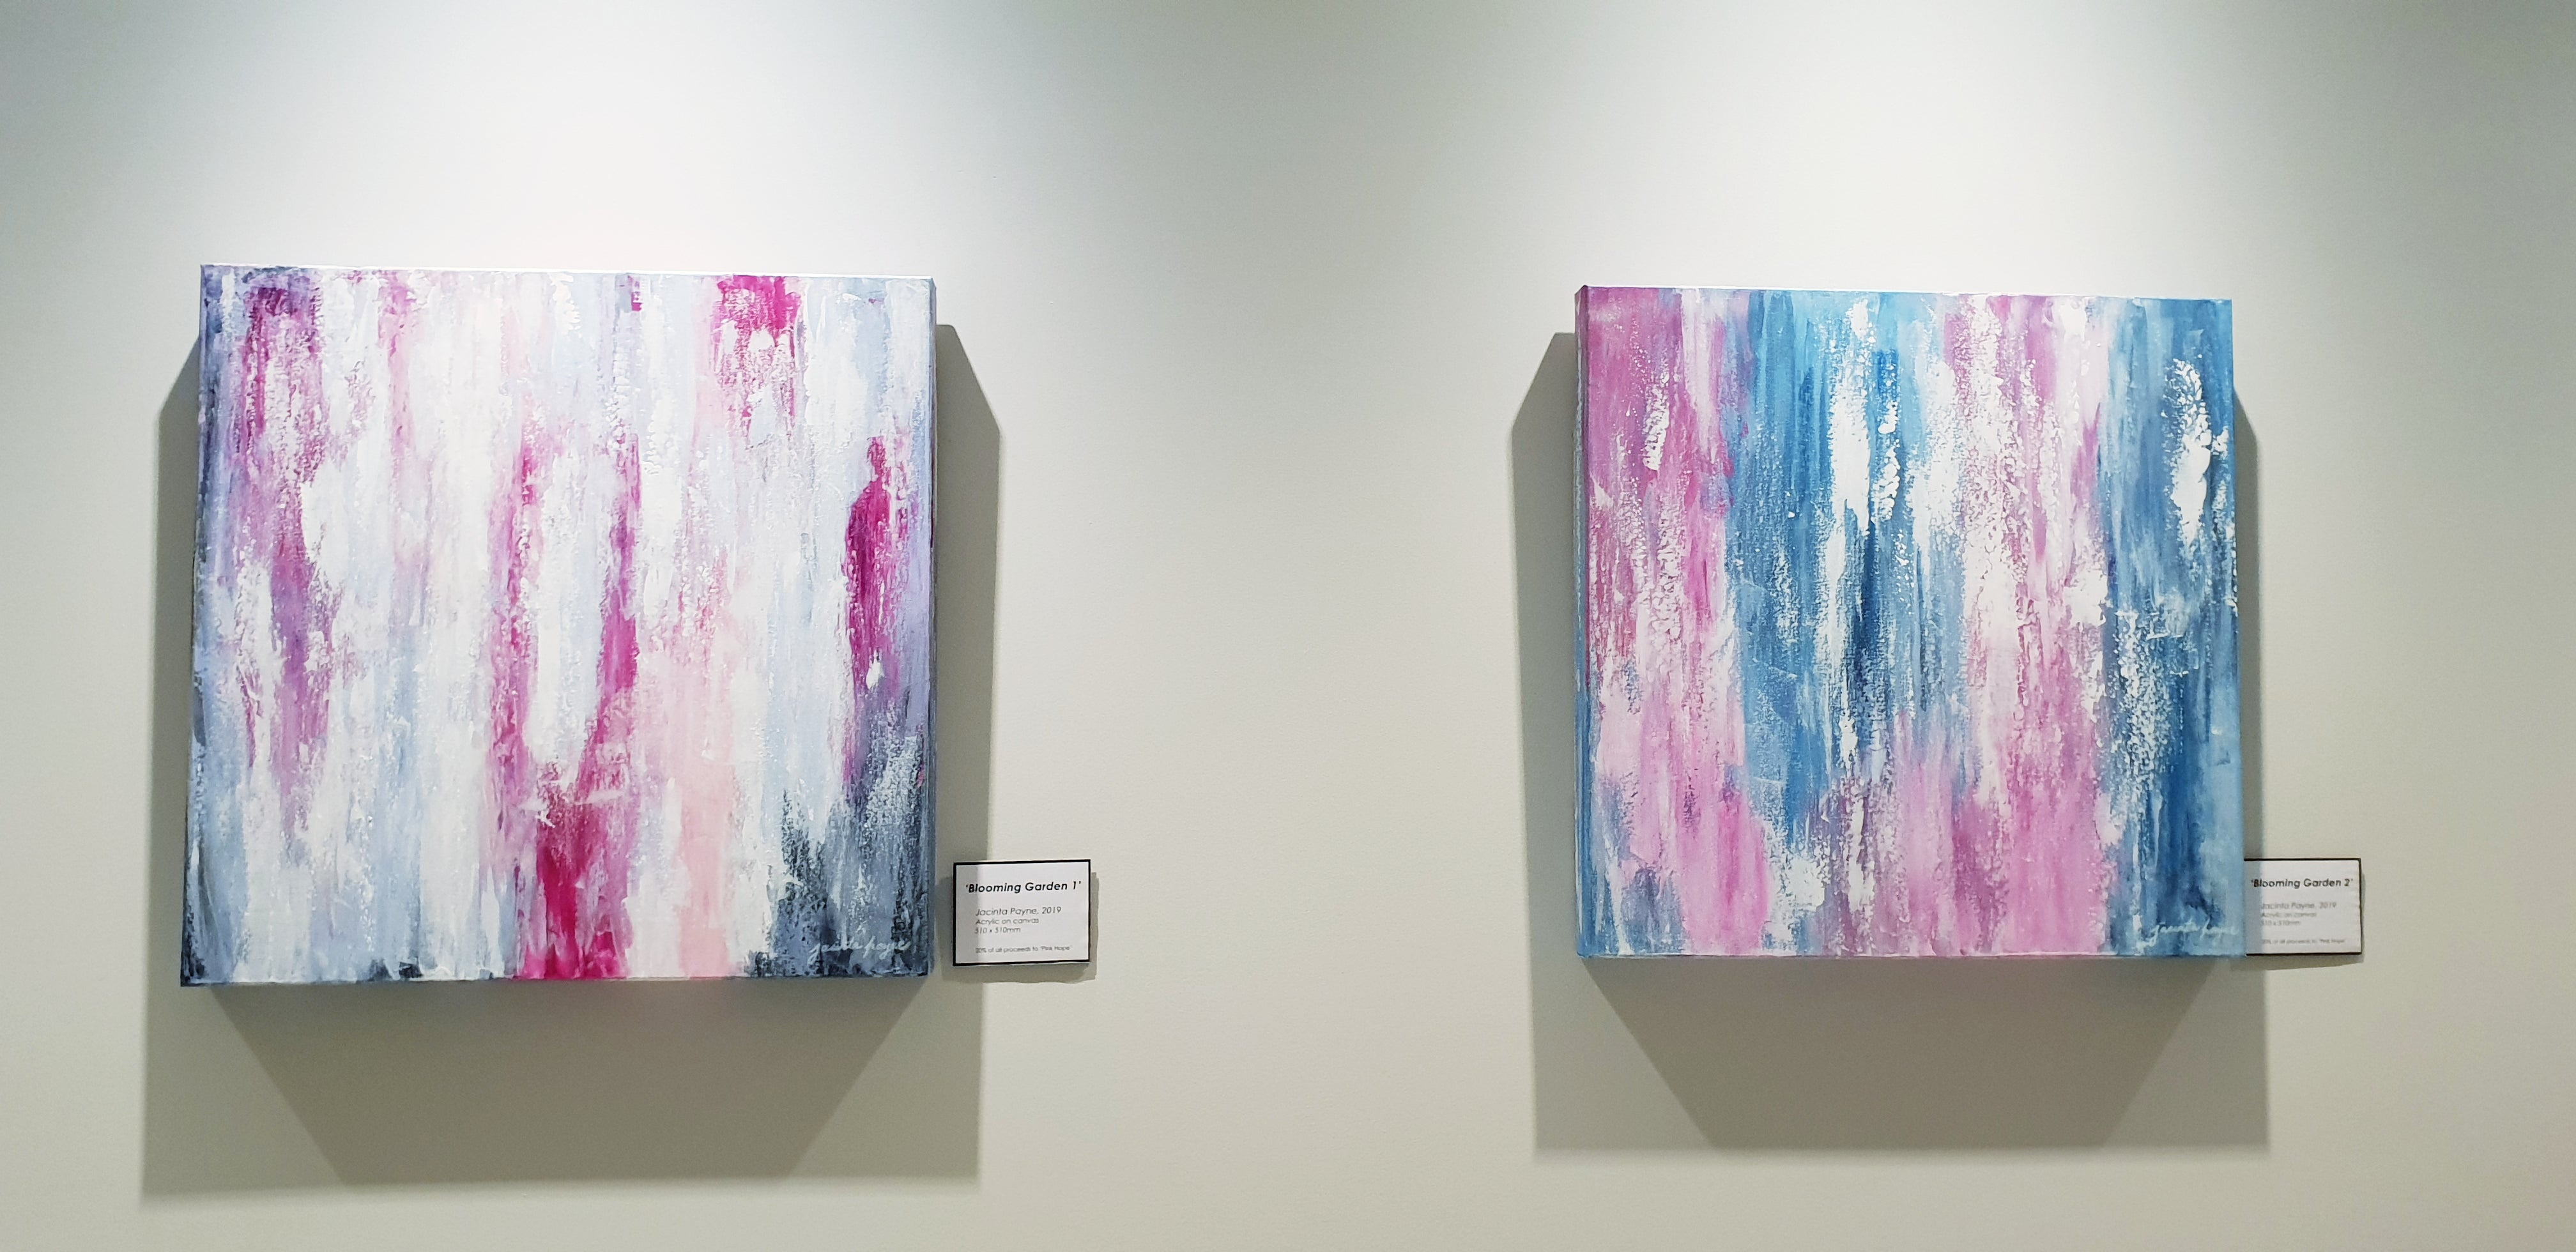 Blooming Garden 1 & 2 by Melbourne artist Jacinta Payne, installed at Imaging Associates Mitcham